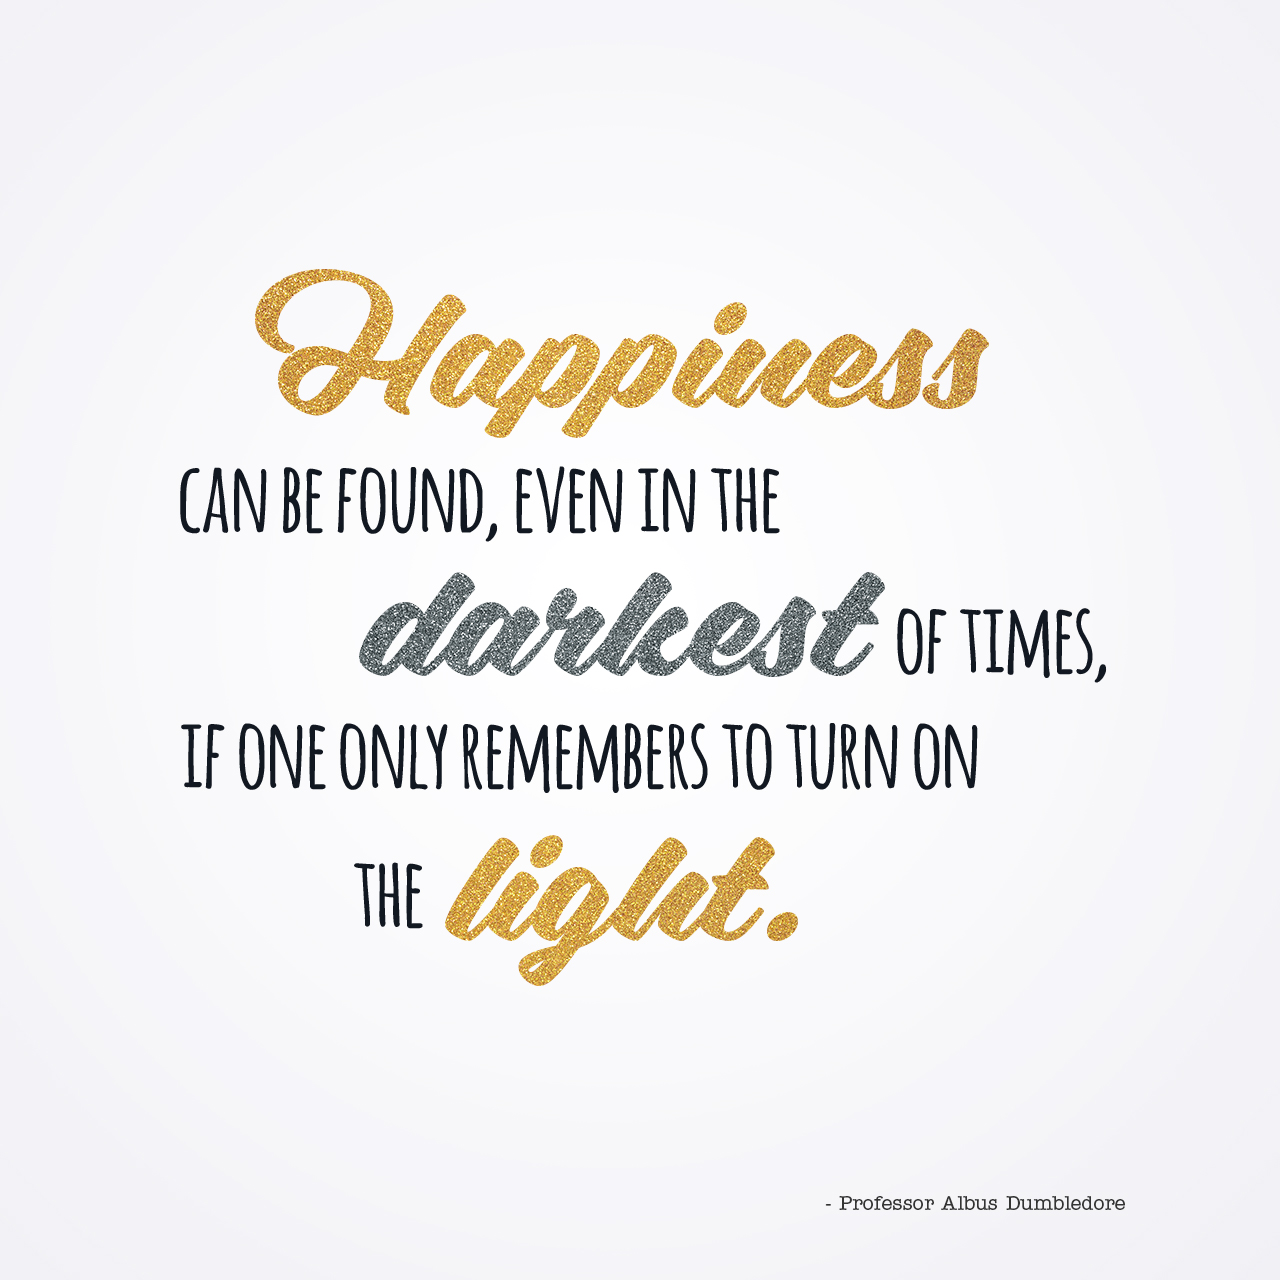 Happiness, Albus Dumbledore, quote